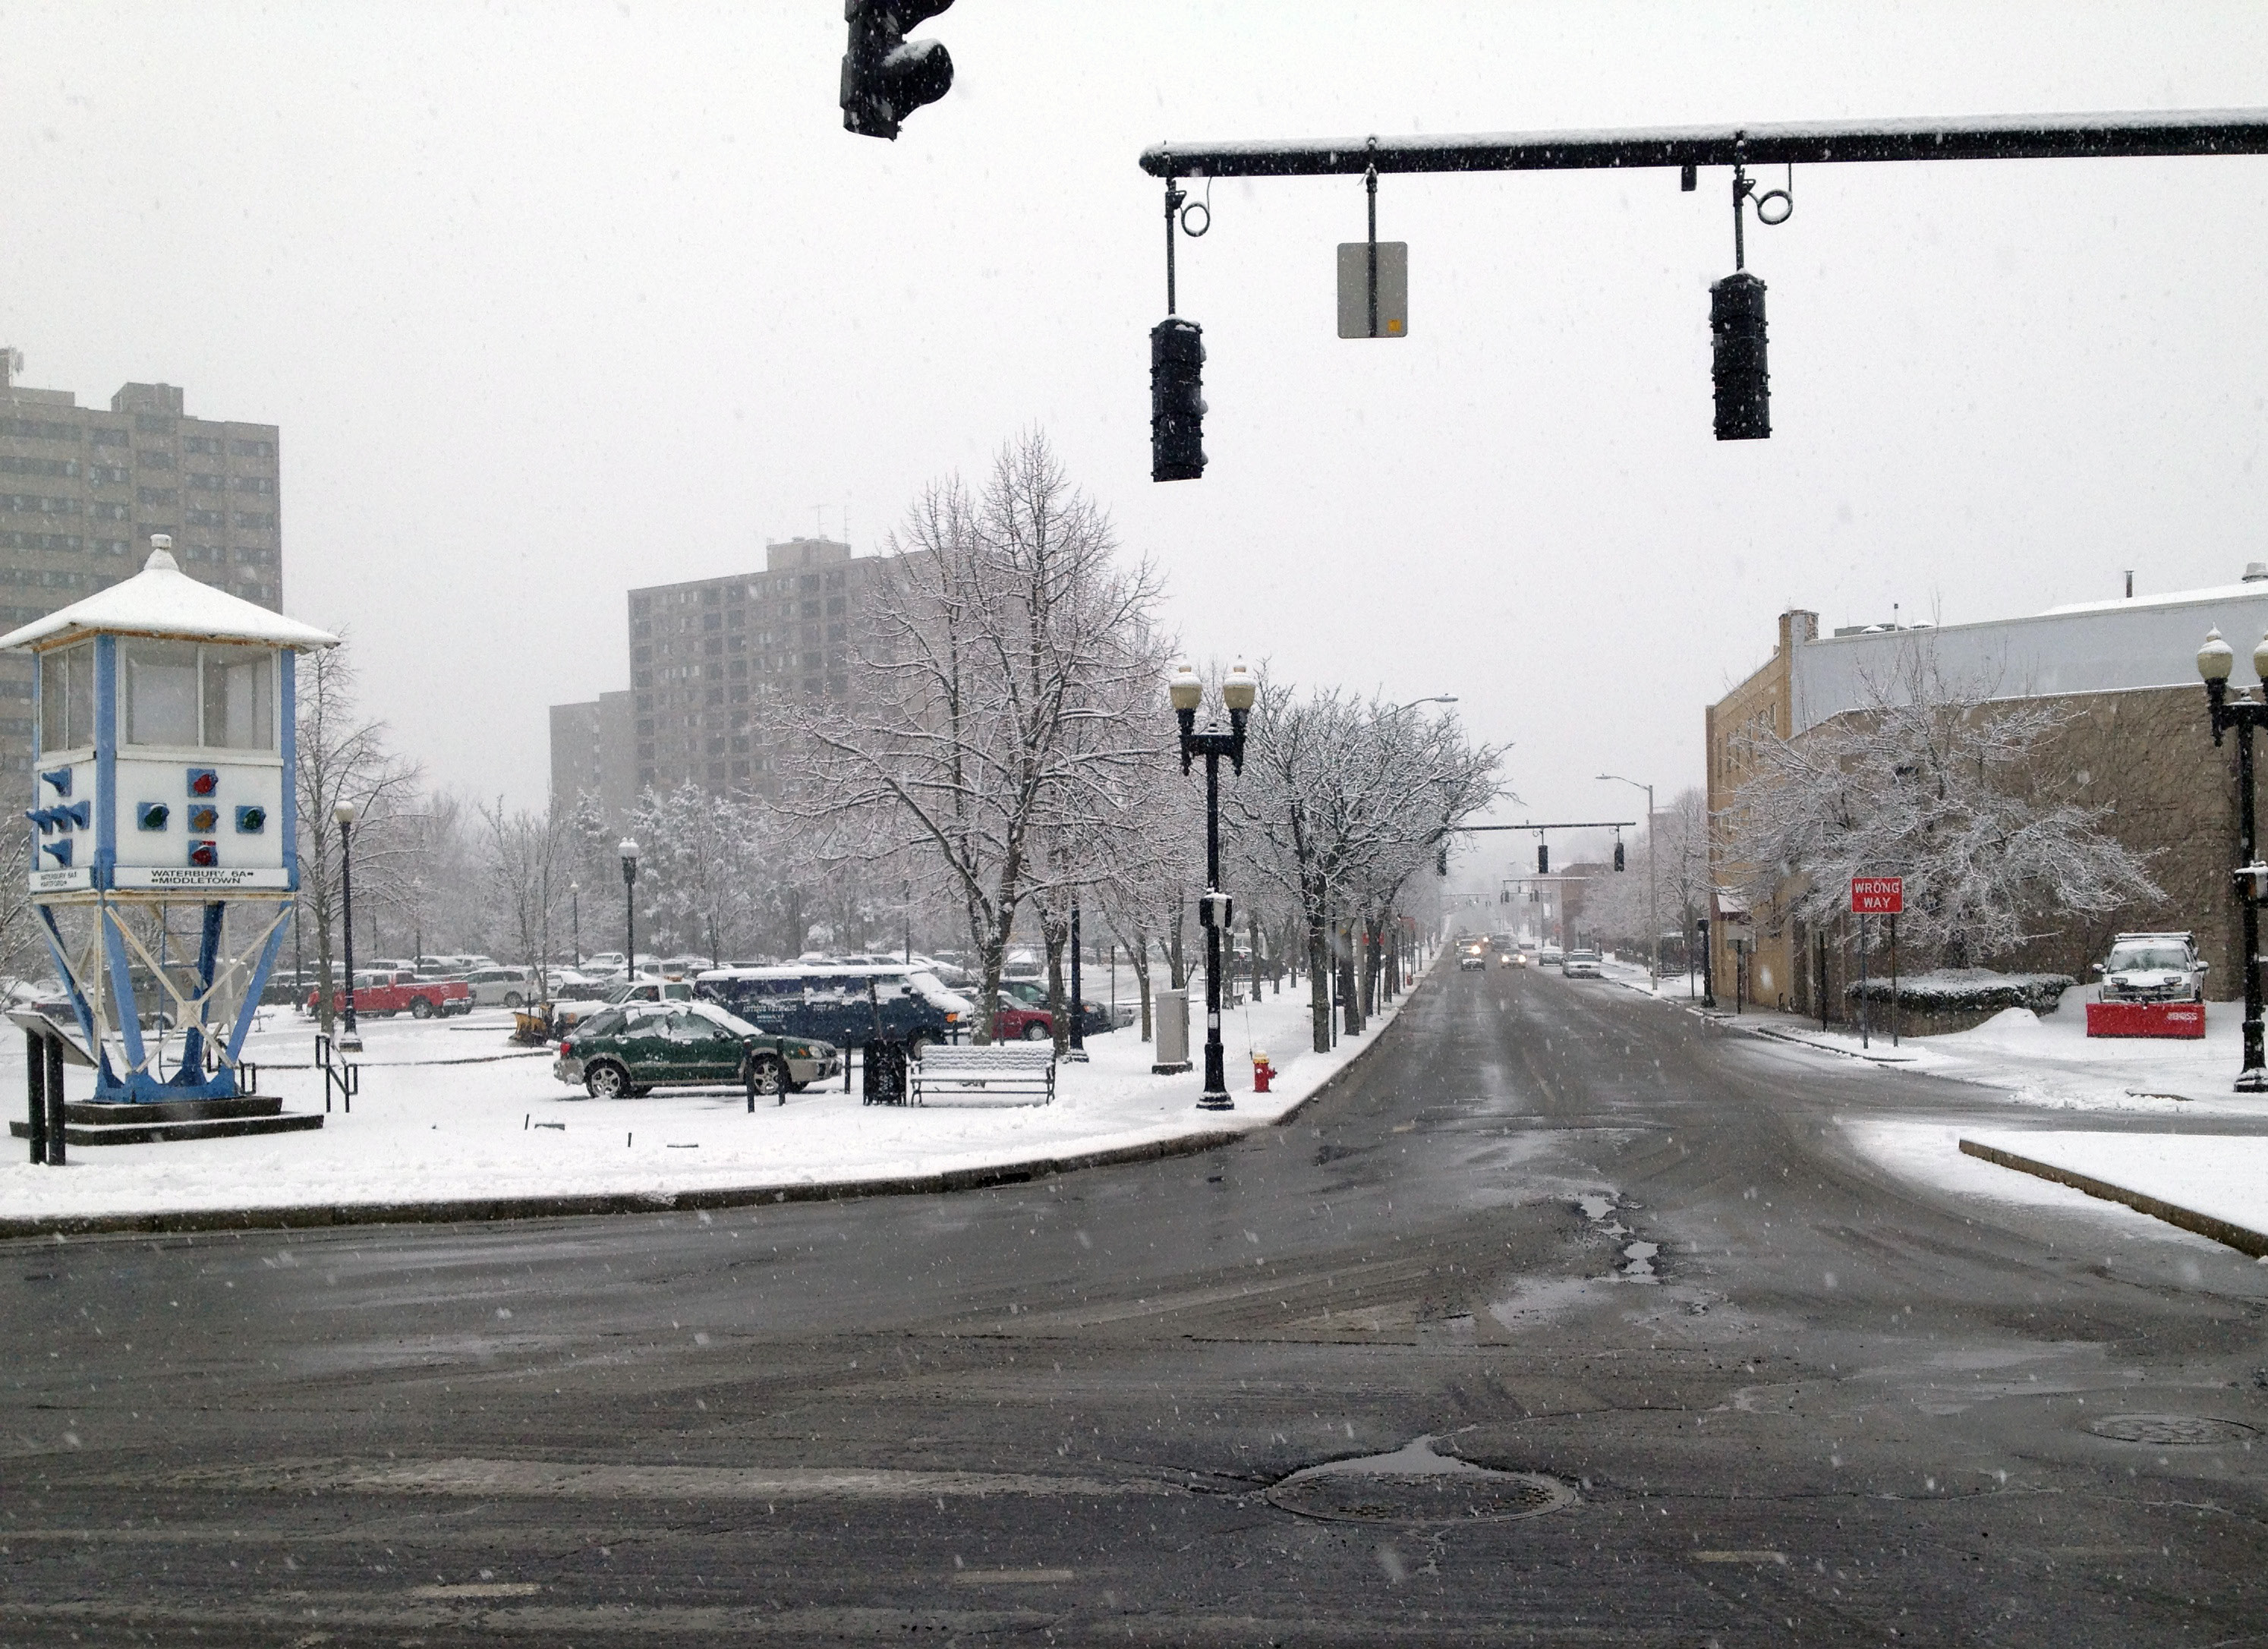 Snow falls in downtown Meriden Feb. 3, 2014 | Richie Rathsack/Record-Journal